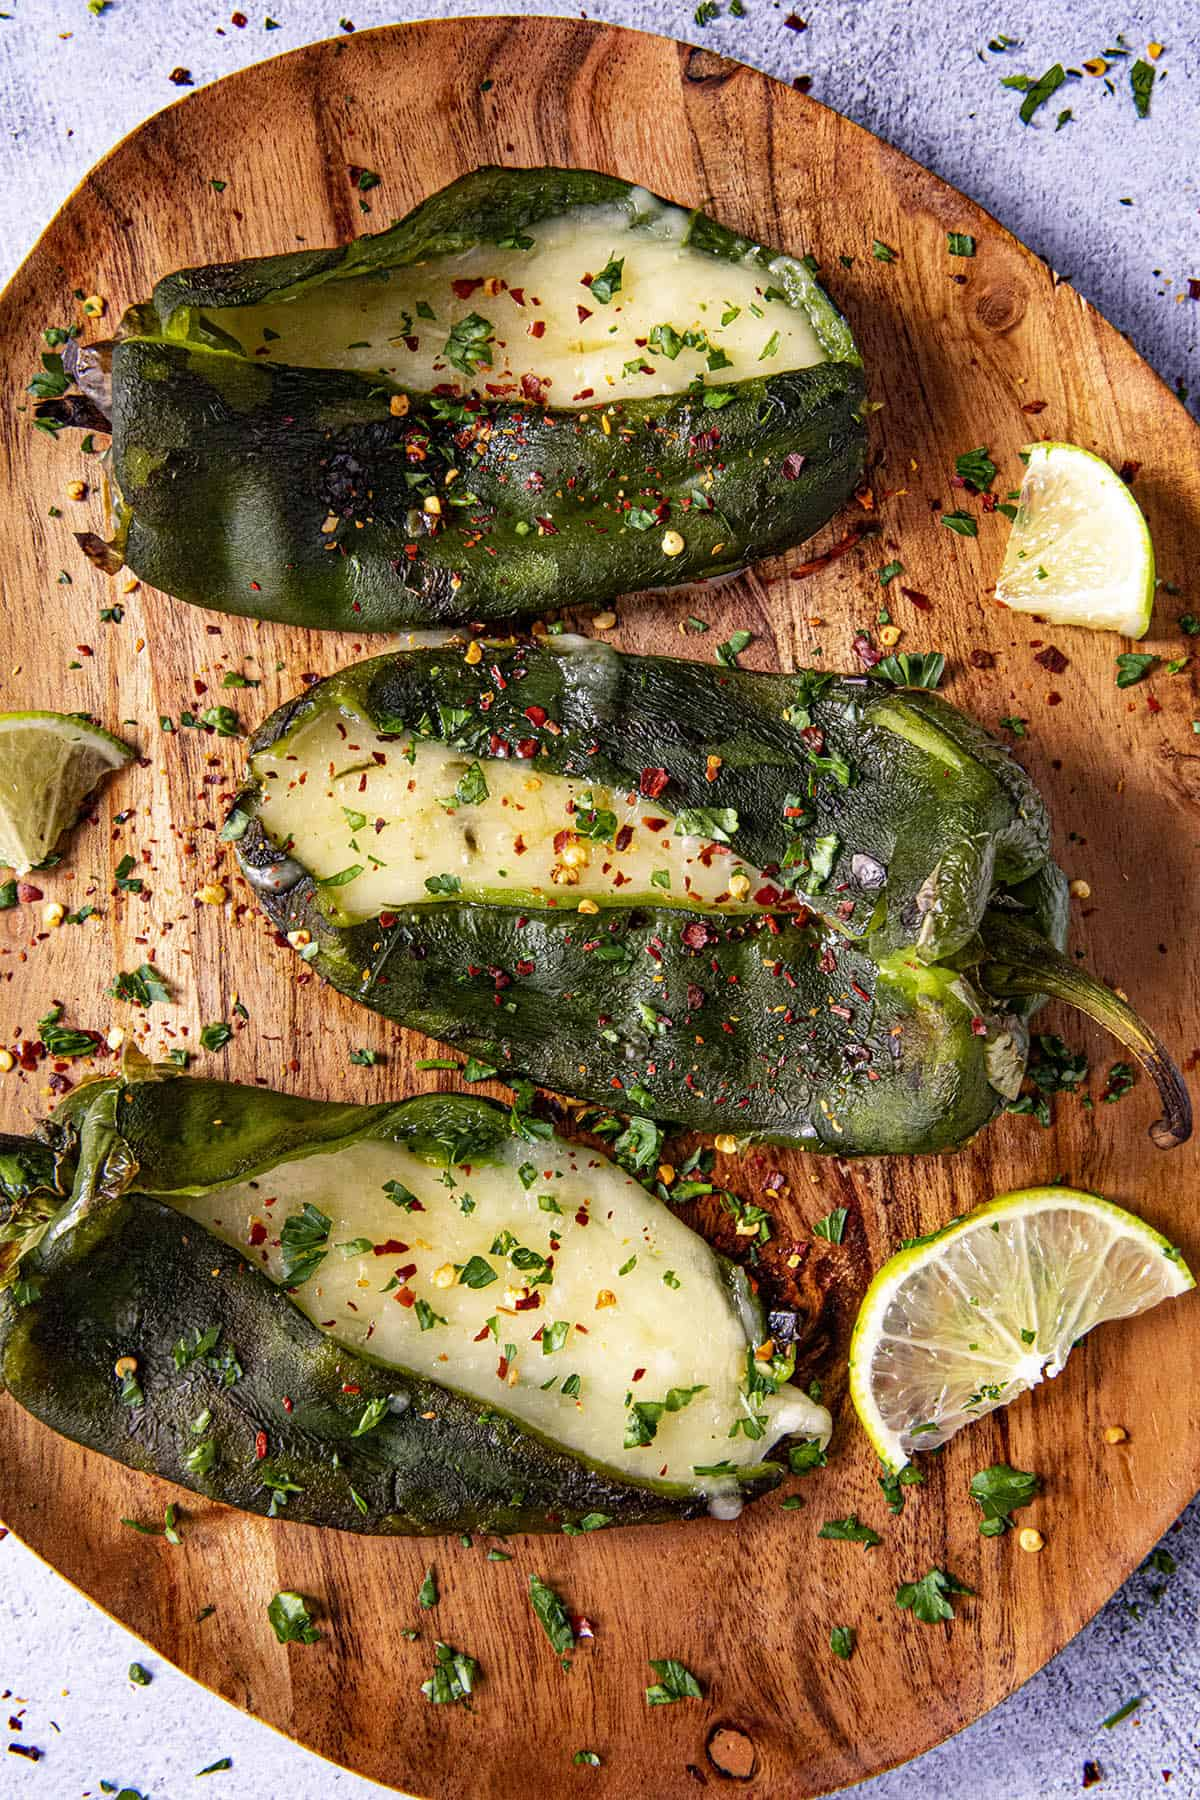 Three Poblano peppers stuffed with cheese on a plate